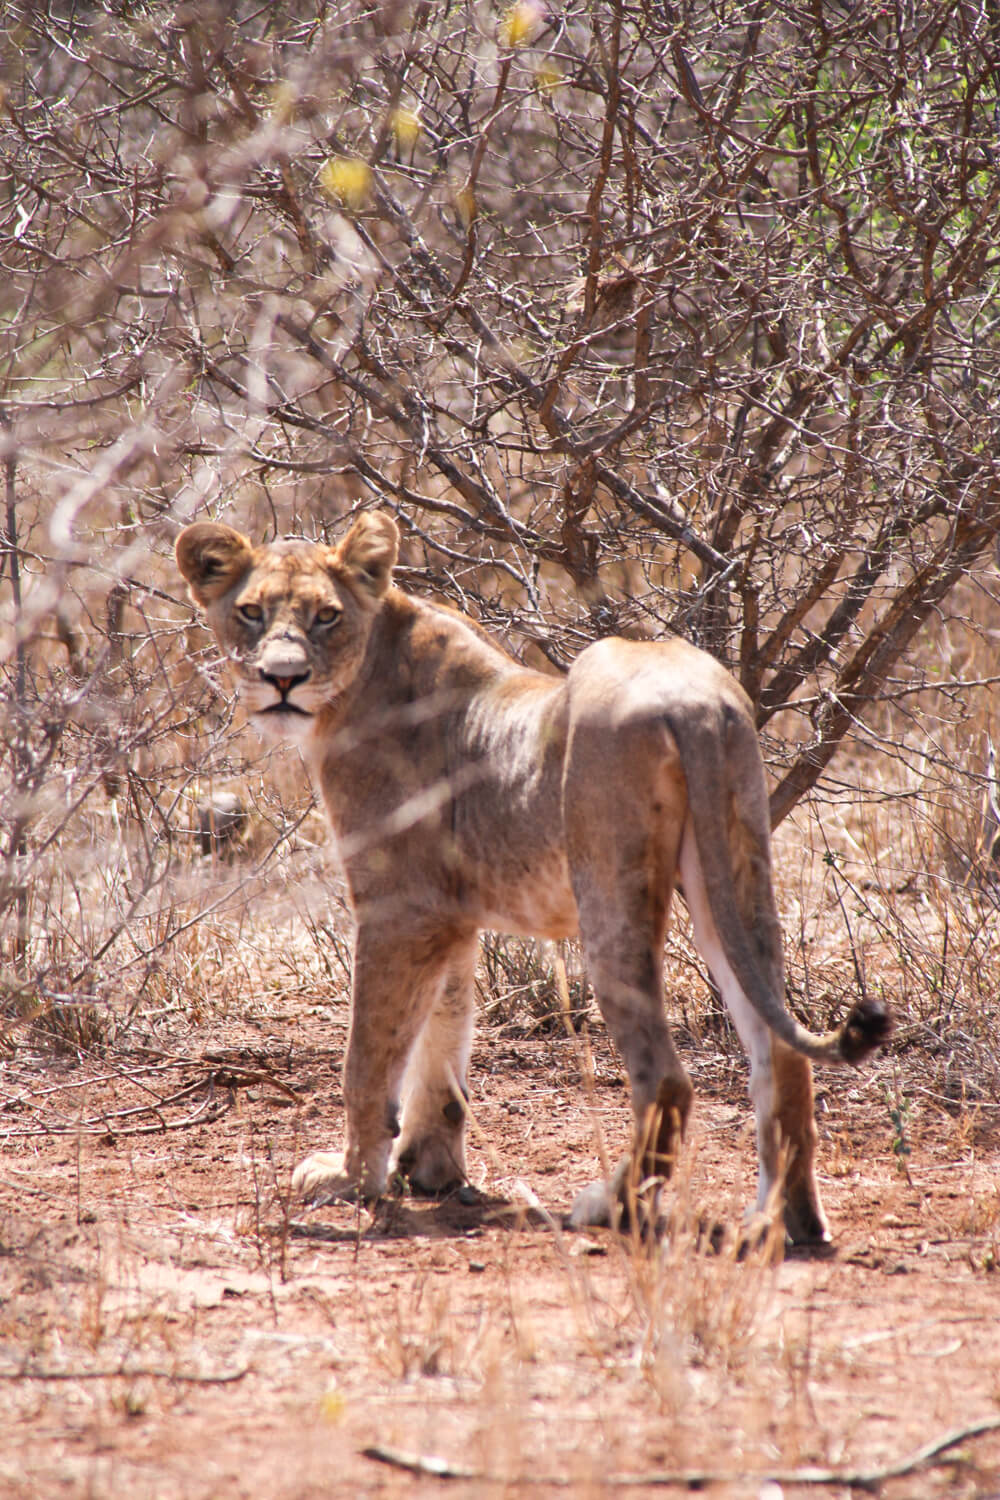 Pictures in Kruger National Park of a family of lion cubs